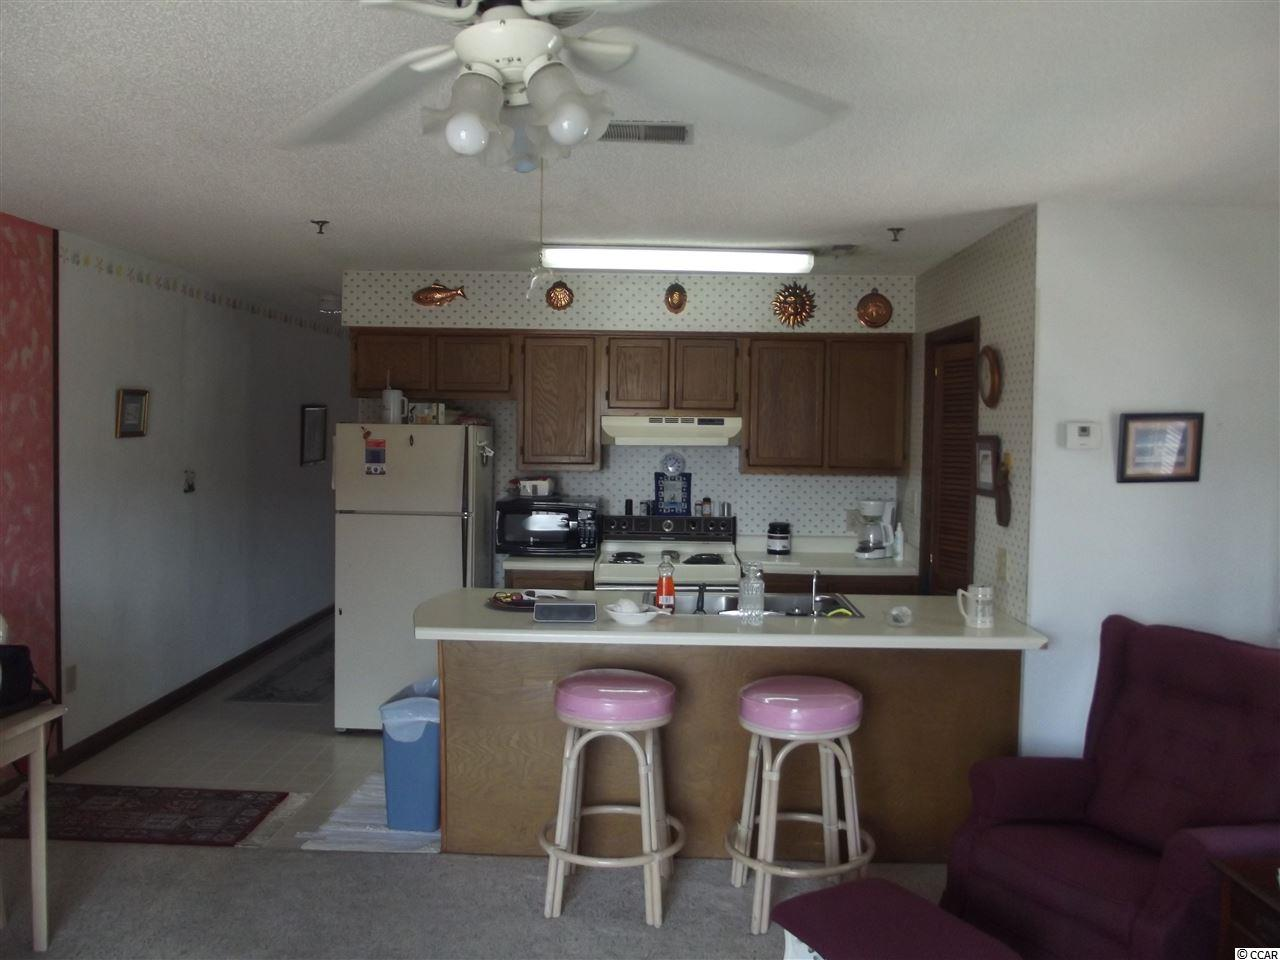 Surfside By the Sea condo for sale in Surfside Beach, SC